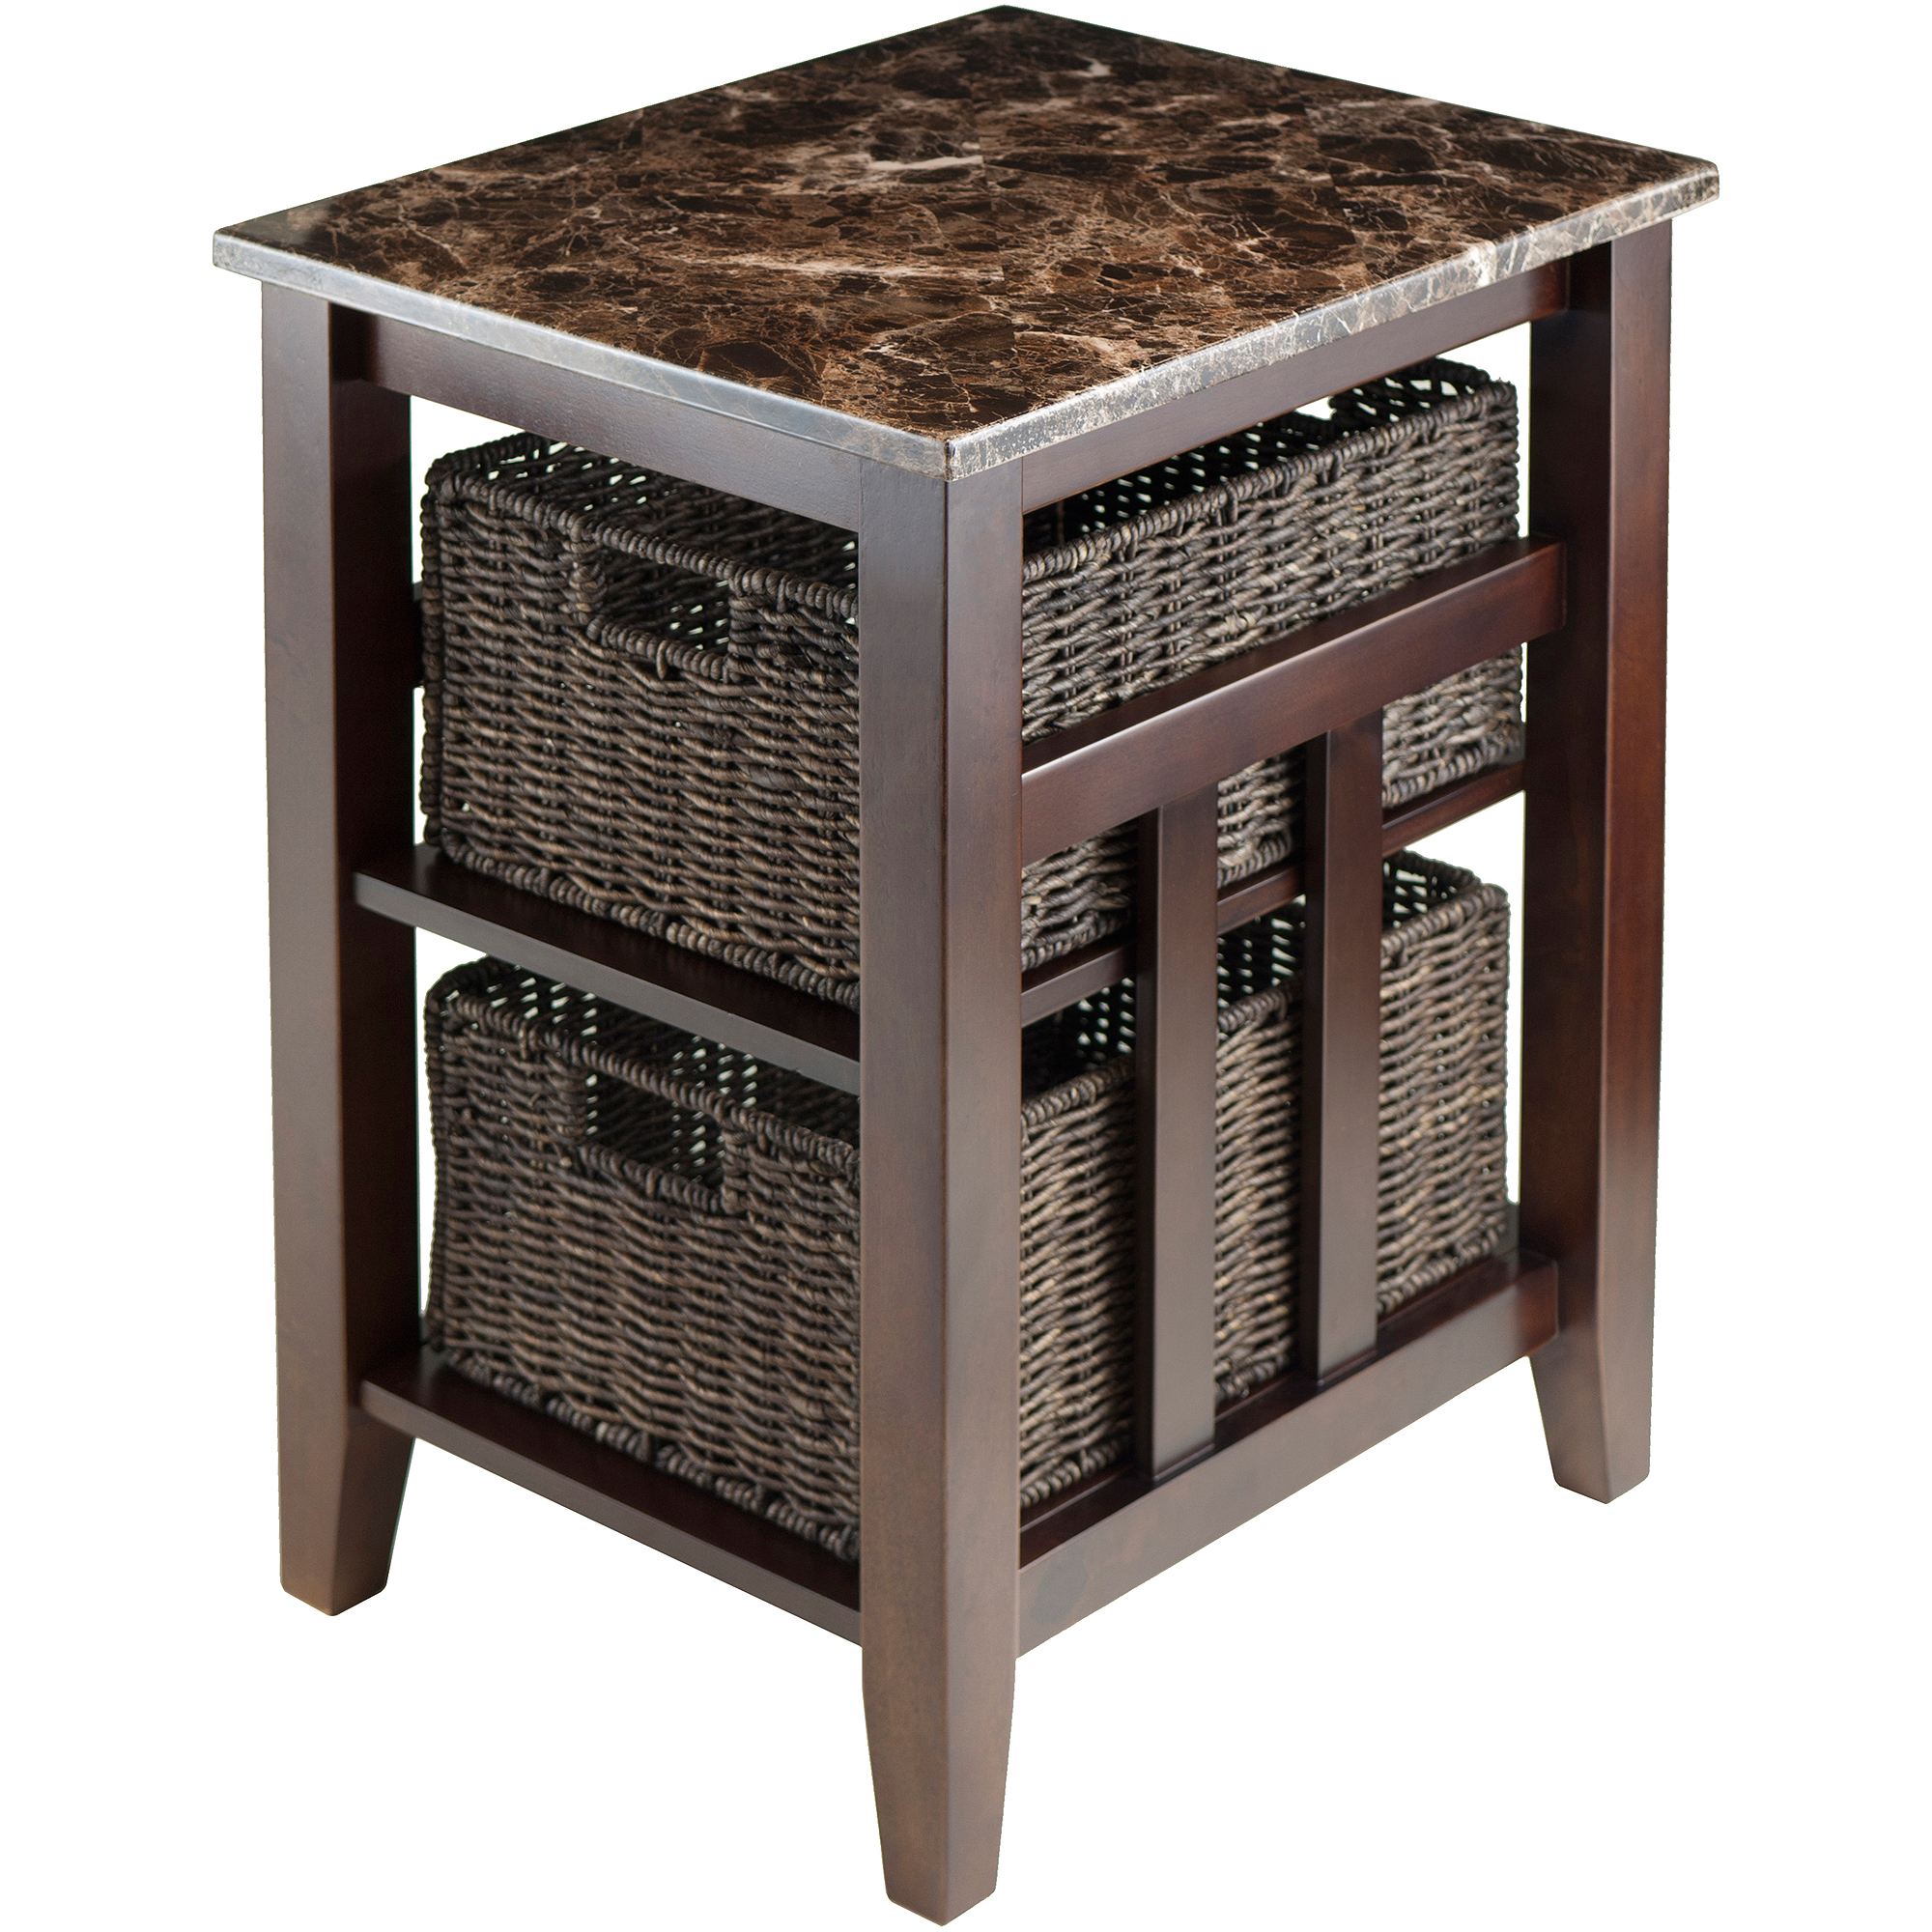 Zoey Night Accent Table with Baskets, Walnut